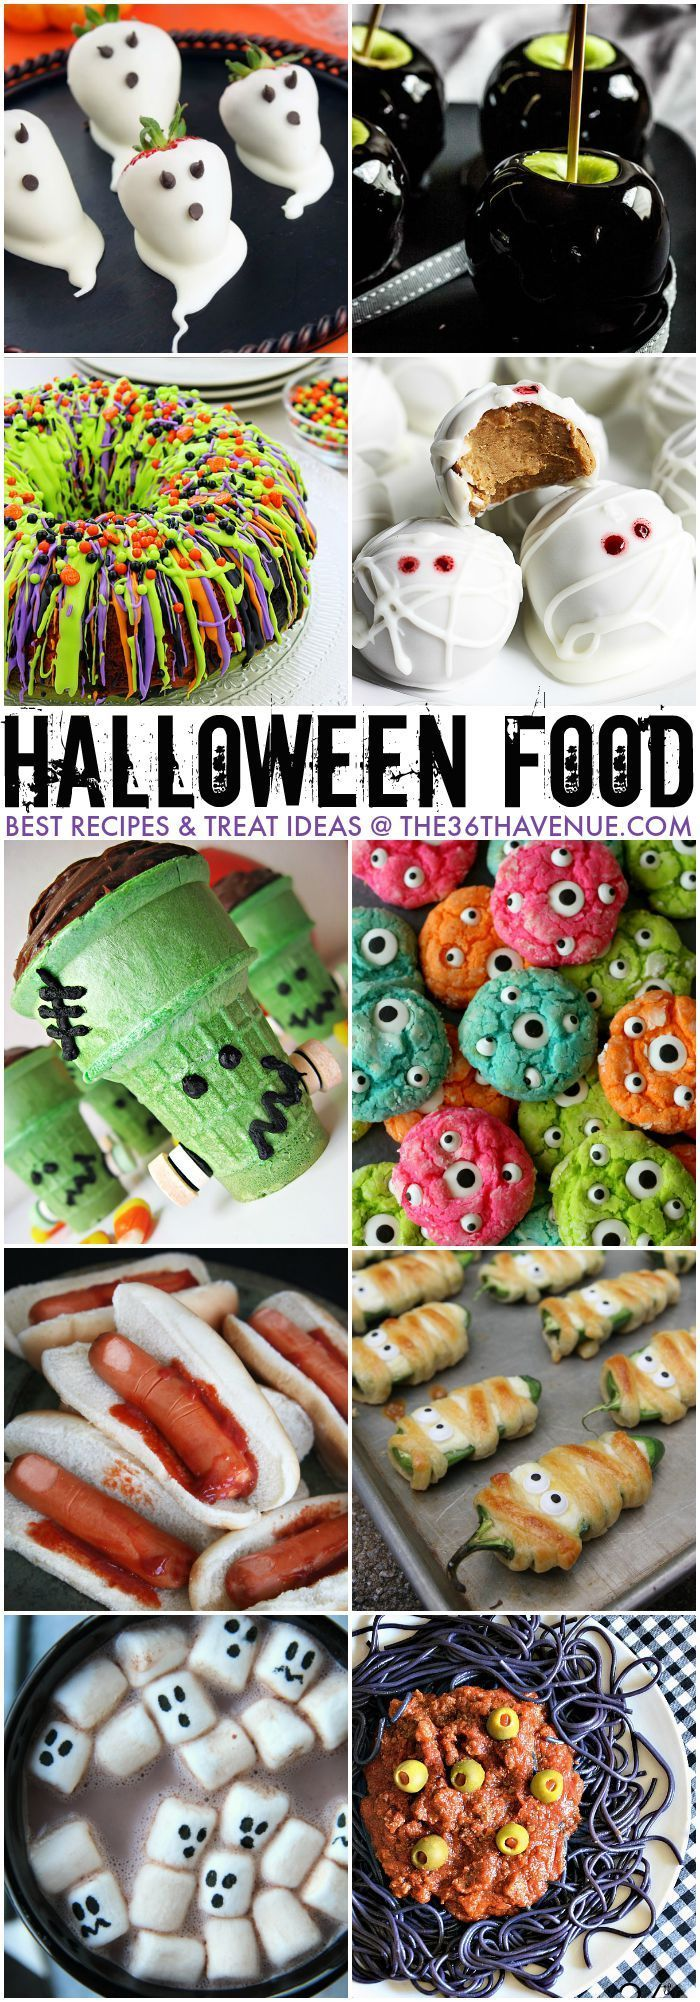 Halloween - Best Treats and Recipes